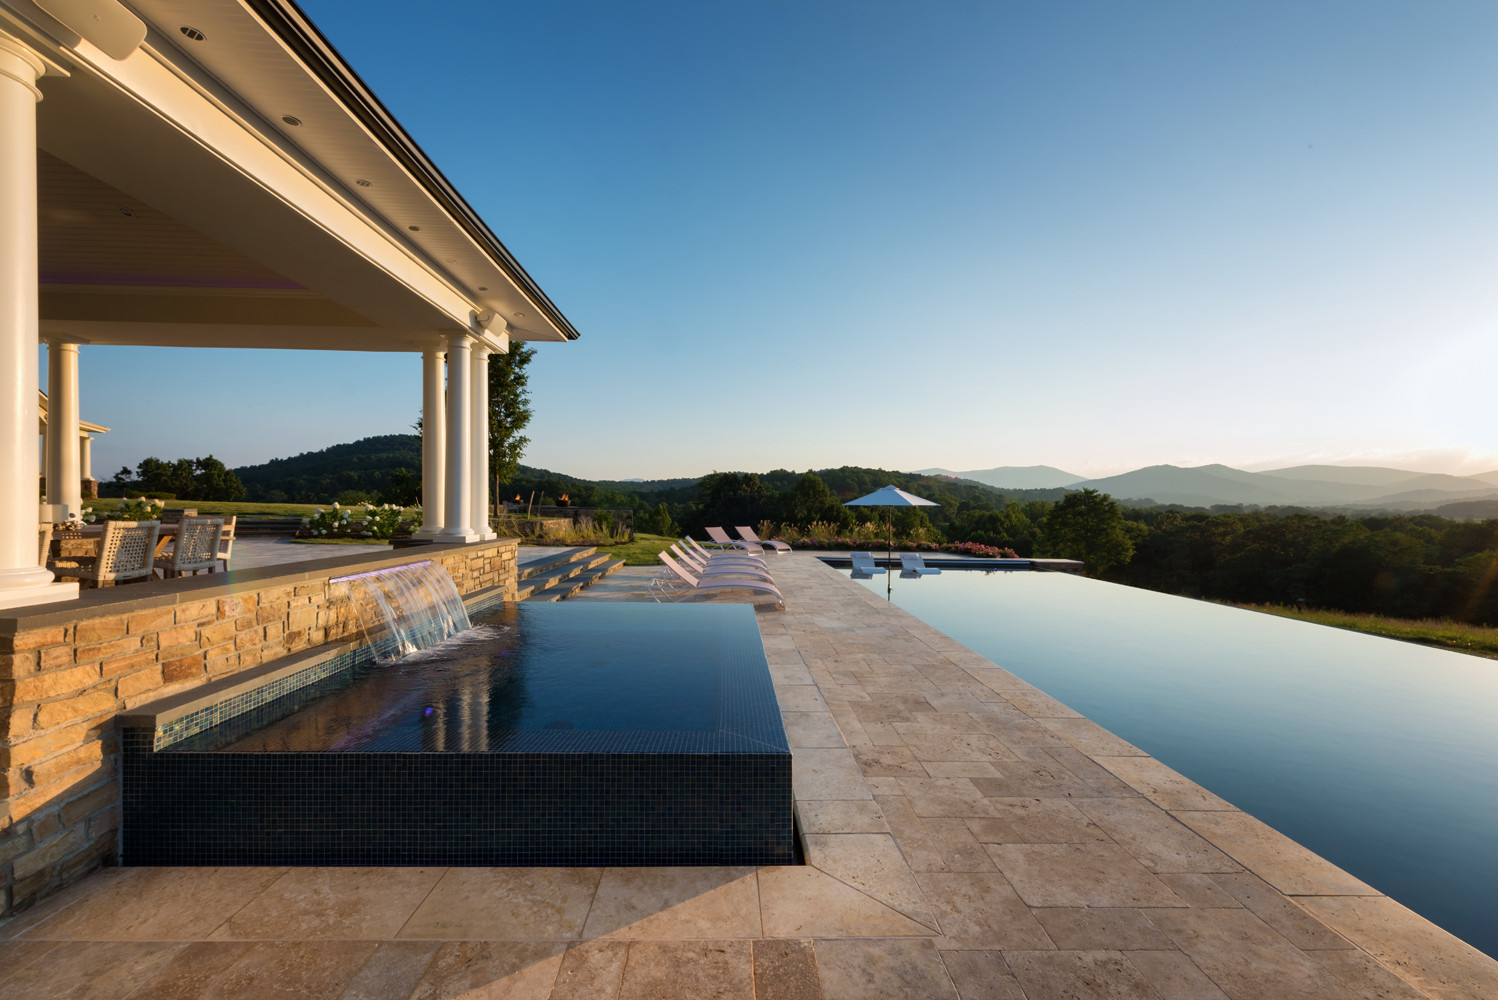 75 Beautiful Pool Pictures & Ideas | Houzz